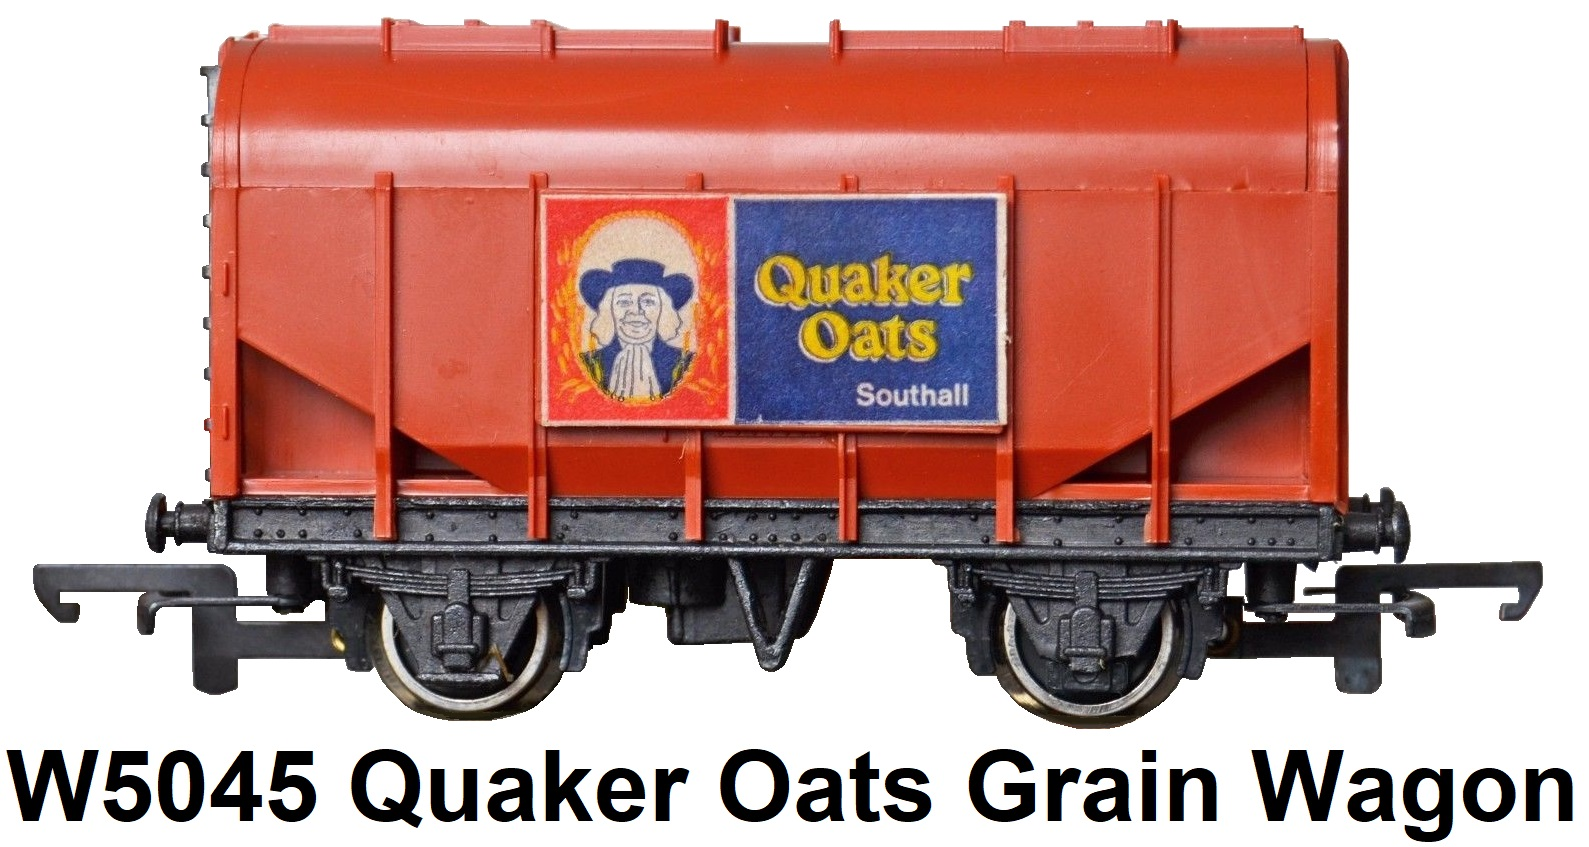 G & R Wrenn Railways OO/HO gauge W5045 Quaker Oats Southall Grain Wagon